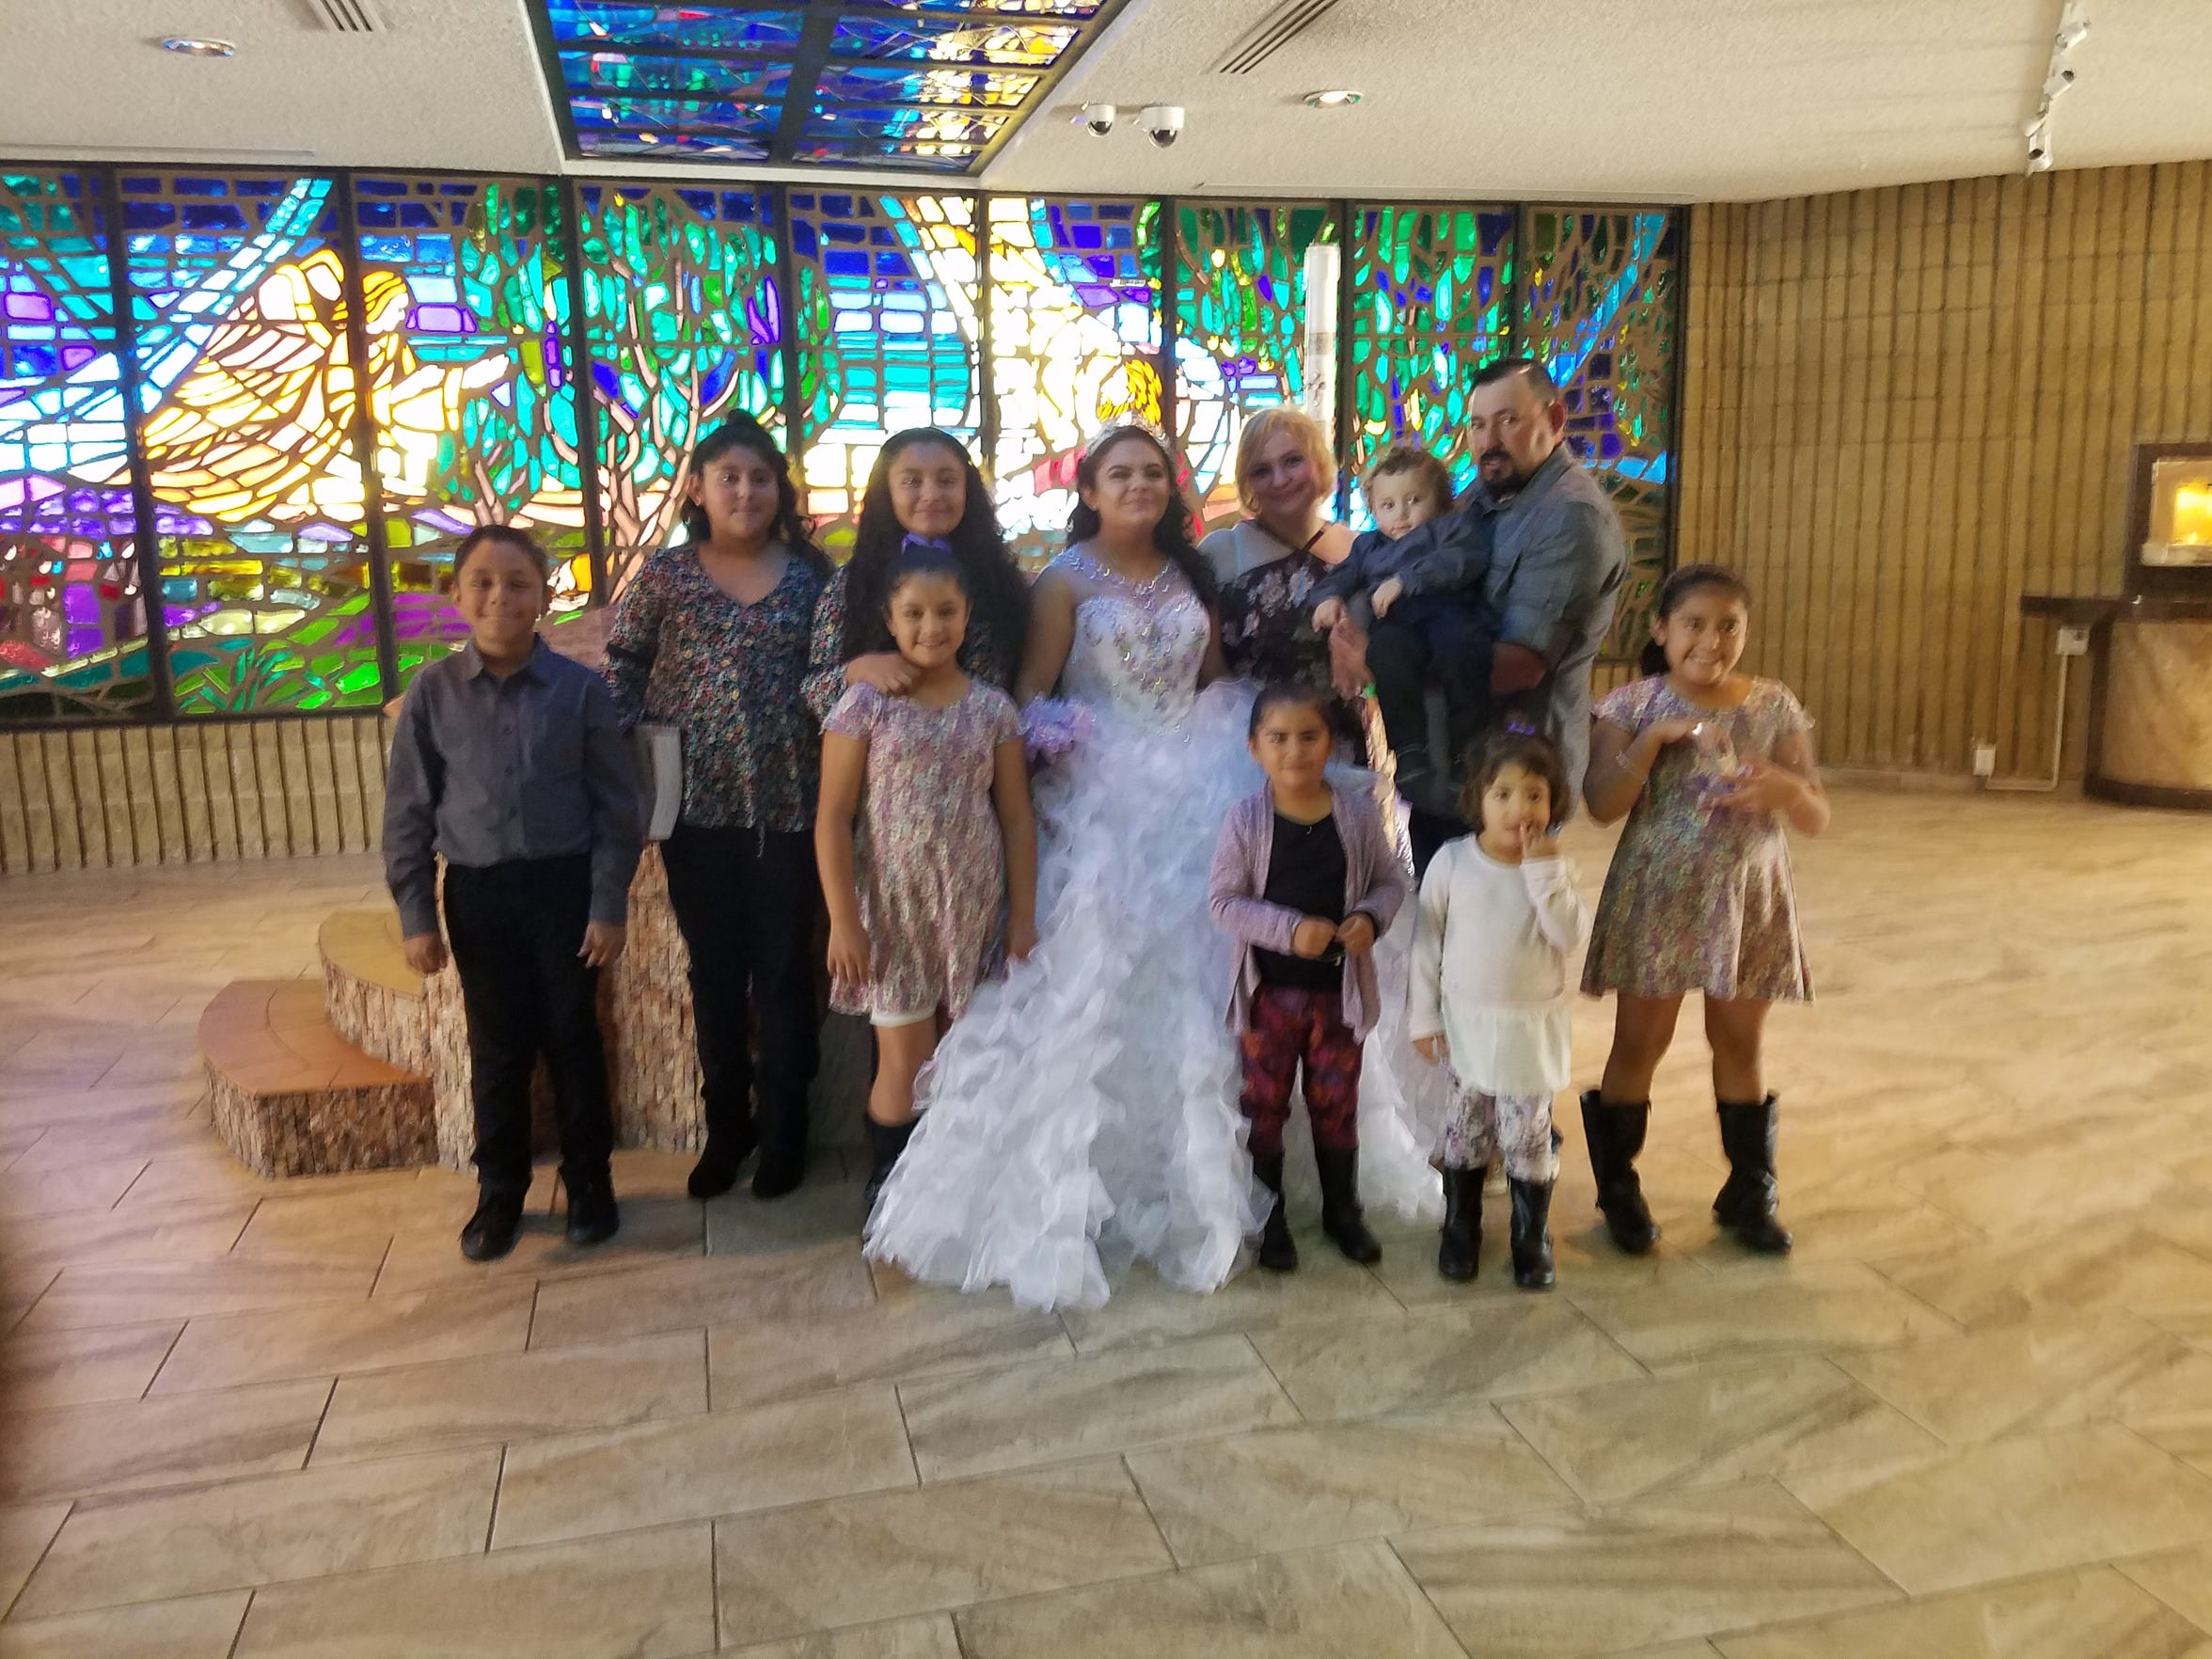 Carla Gabrielle Ballesteros with her family at her quinceañera.